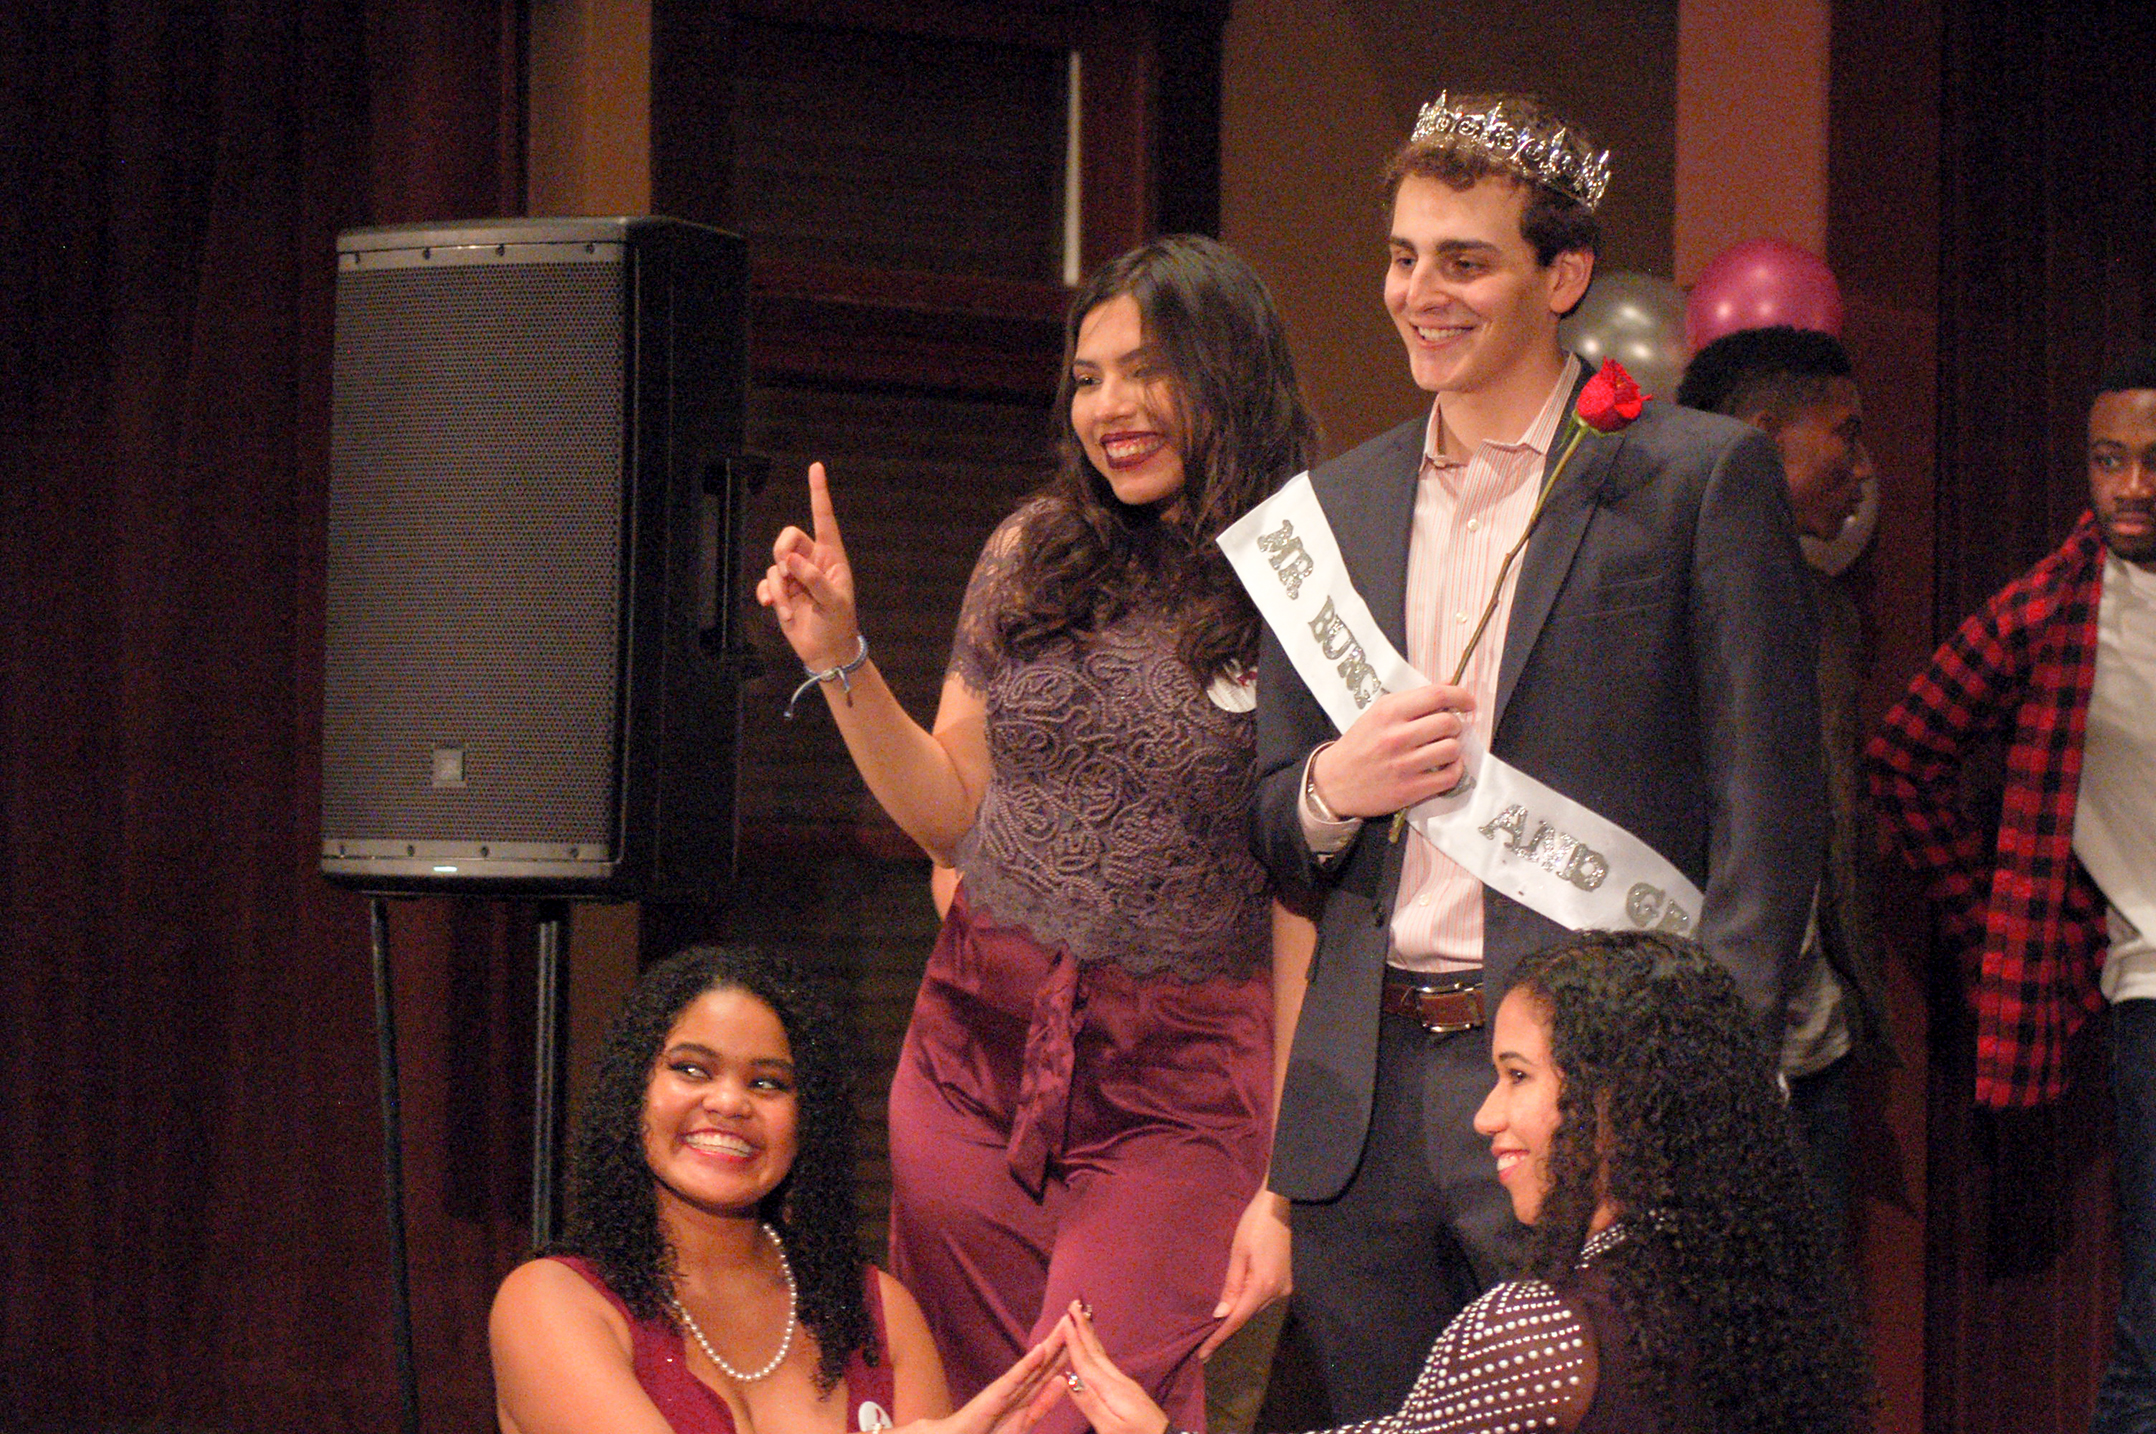 Ian Davis, '18, was awarded the Mr. Burgundy and Grey crown at the Mr. Burgundy and Grey event on Saturday, Dec. 2, 2017, in Lamberton Hall. Proceeds from the event go to St. Jude's Children's Research Hospital. (Alice Wilson/B&W Staff)